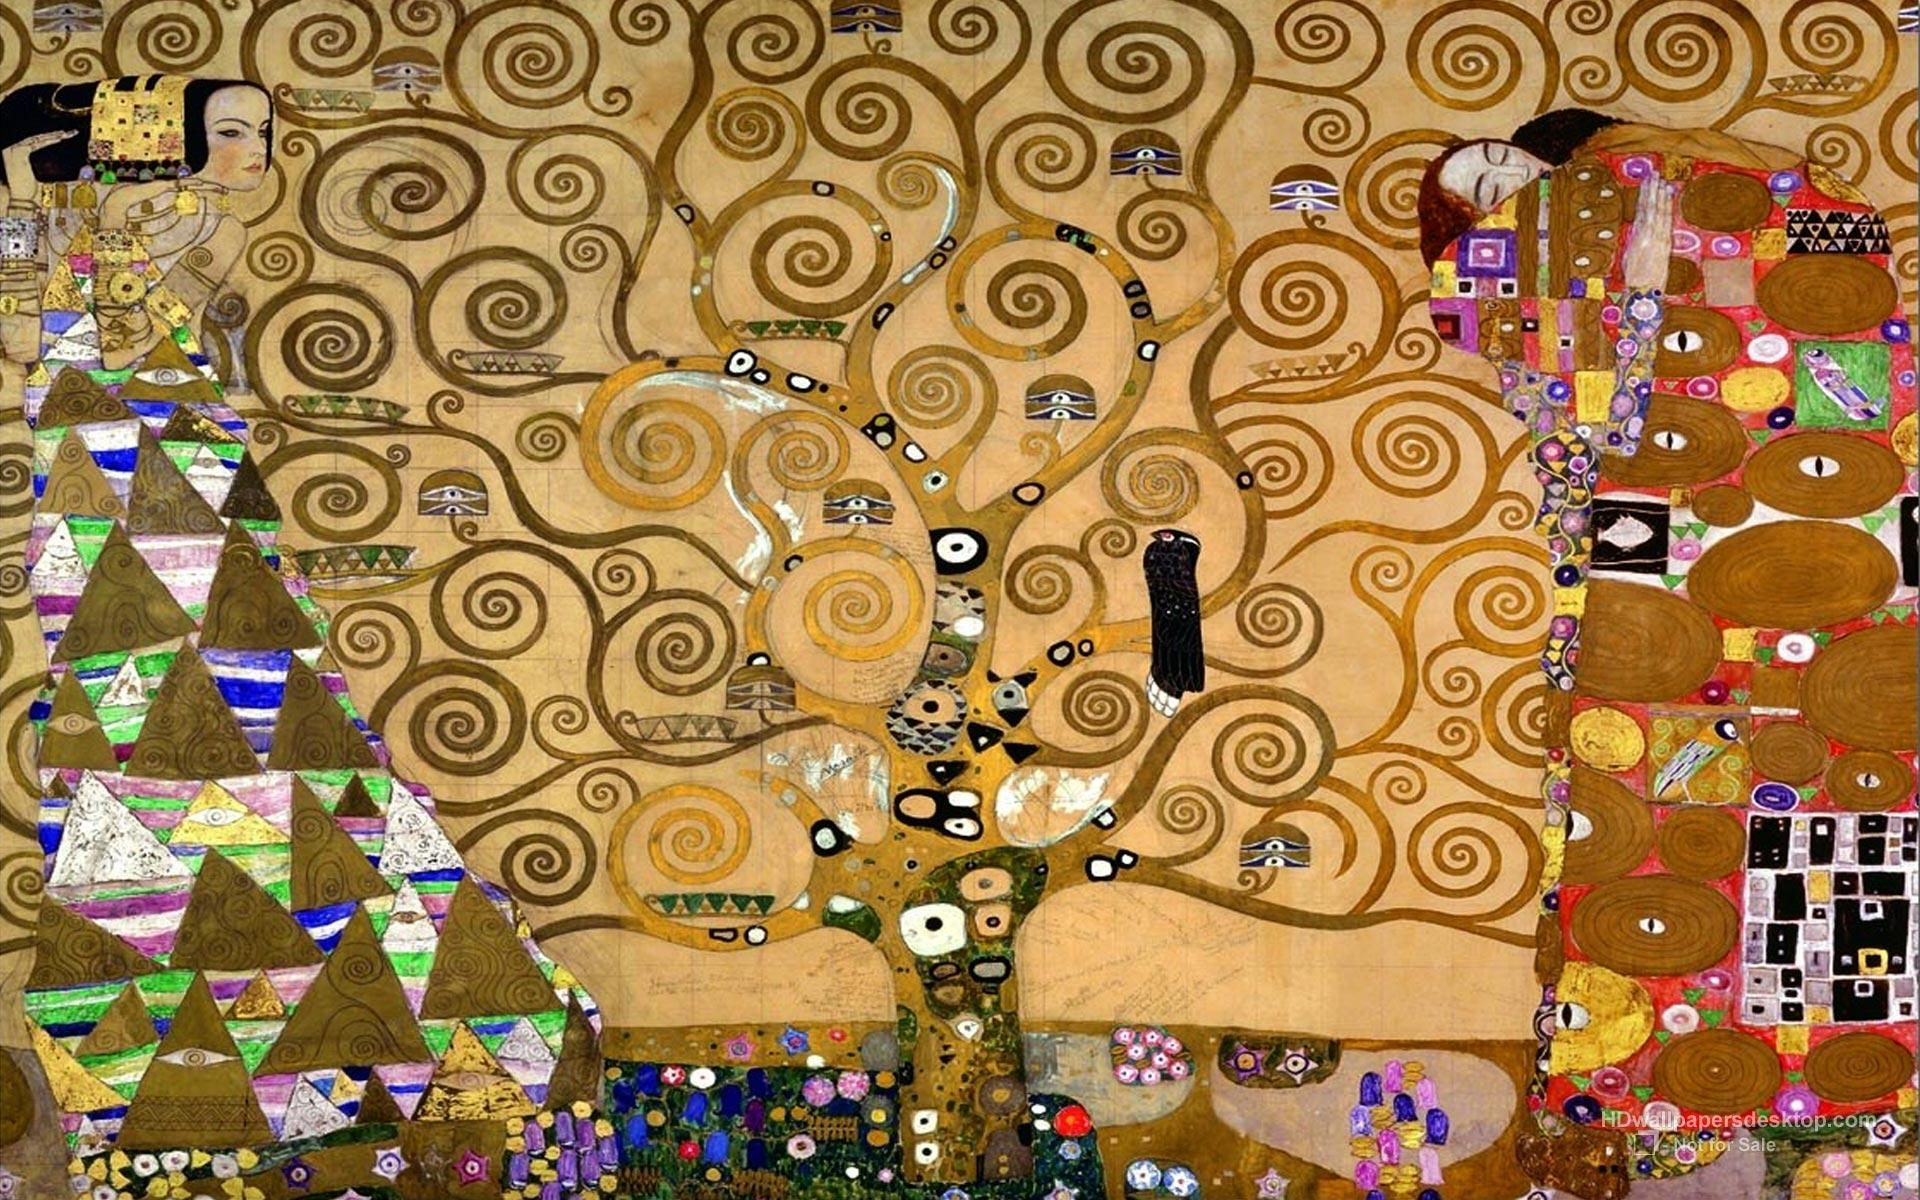 """""""The tree of life"""" or """"The tree of knowledge"""", Gustav Klimt. It is one of the best-known works, and at the same time less views of Gustav Klimt. The work is located in Brussels in the Stoclet Palace, which is private property and is not open to the public, it was declared world heritage by Unesco in 2009. / It's my favorite painting of Klimt."""